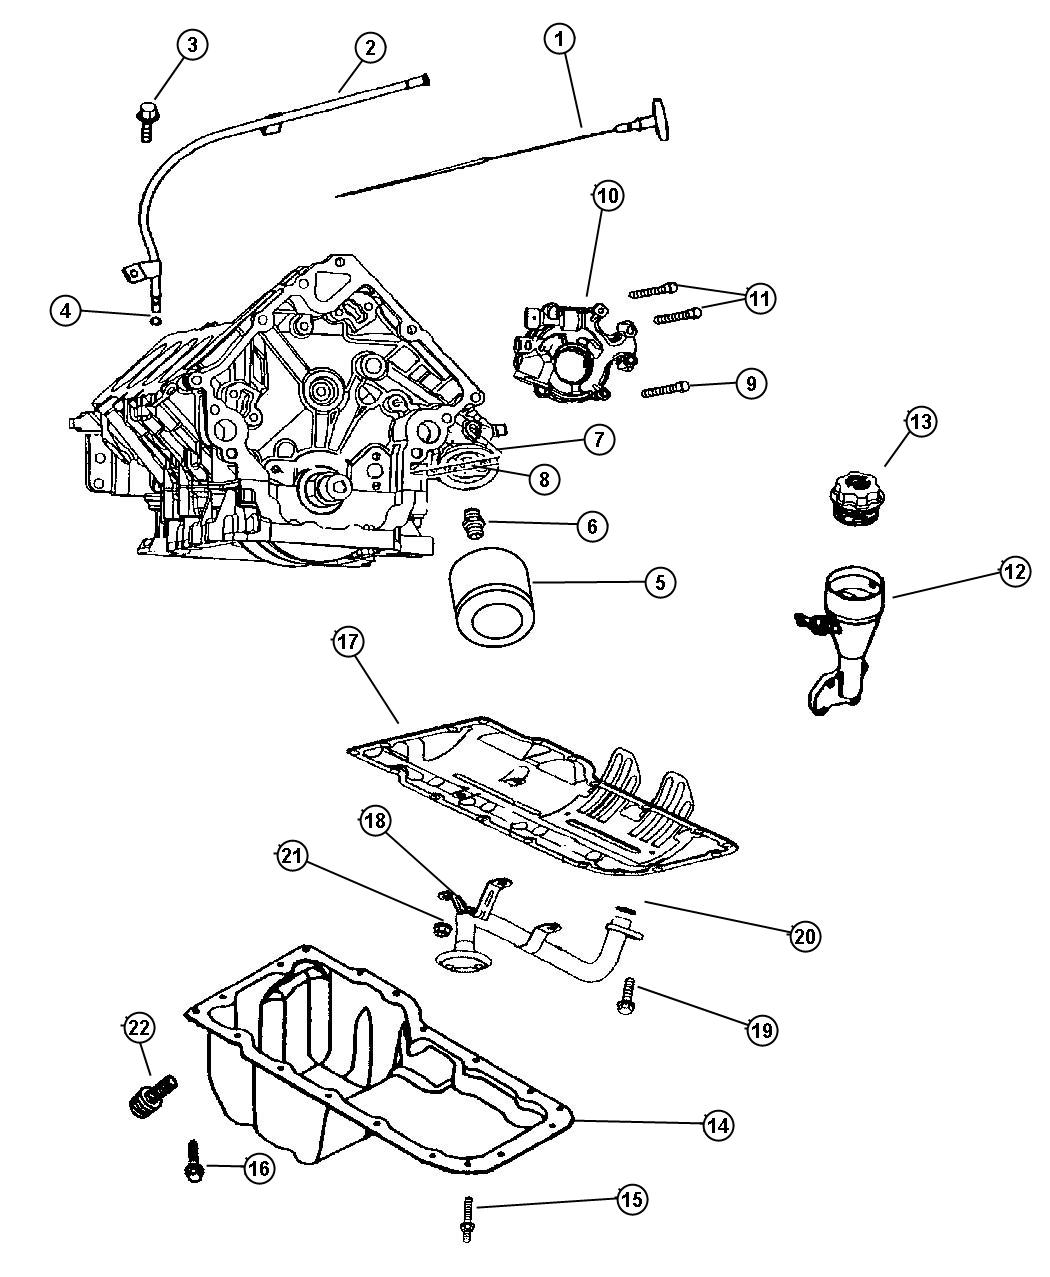 [WRG-4671] Dodge Hemi 5 7 Engine Diagram